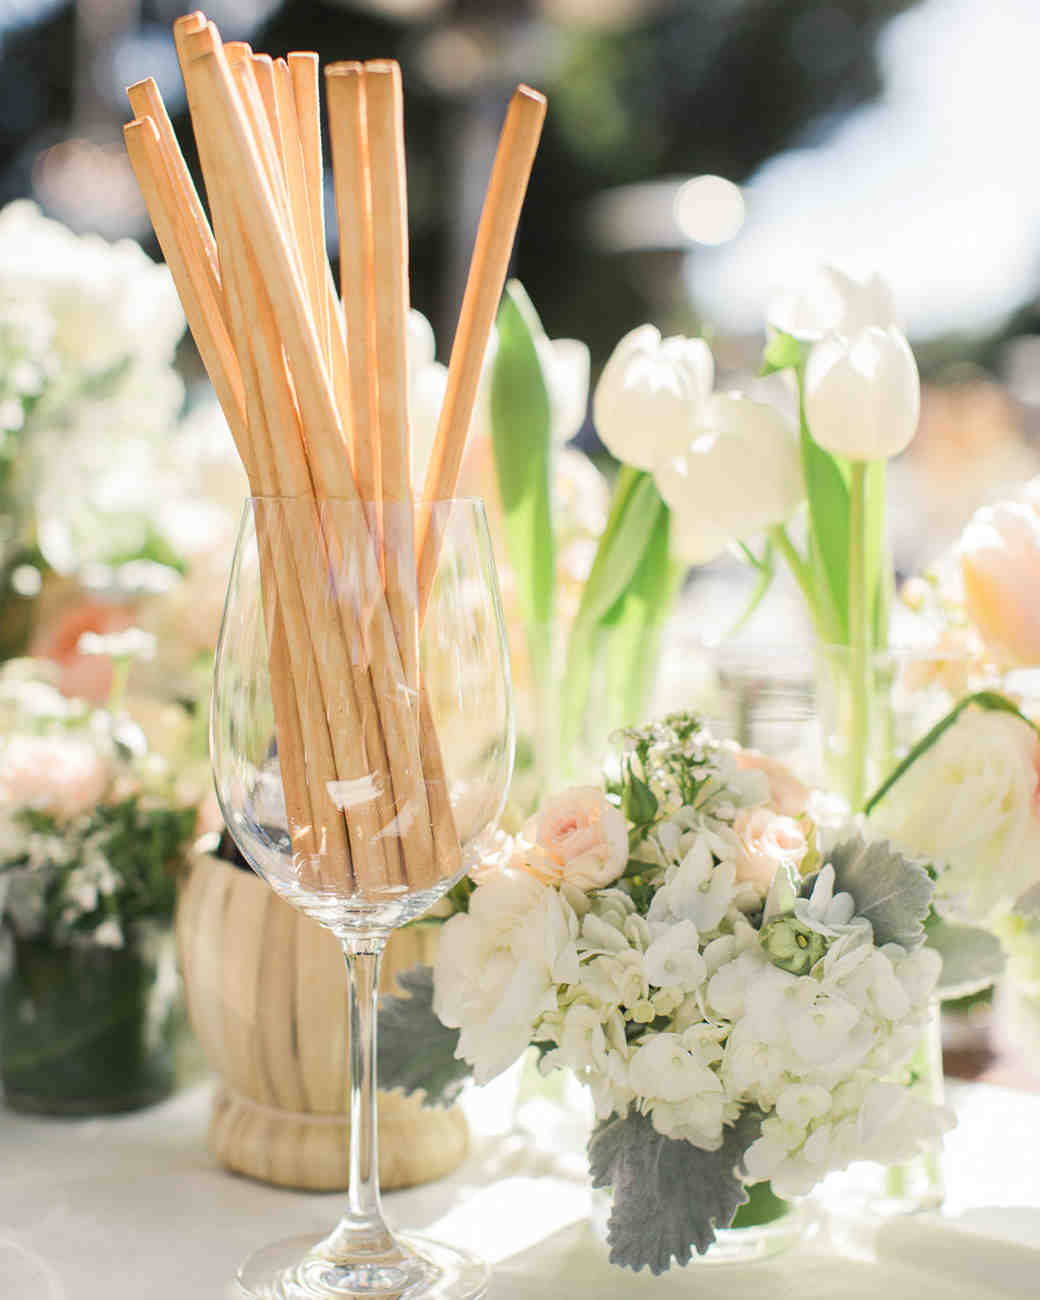 bread sticks in wine glass on table